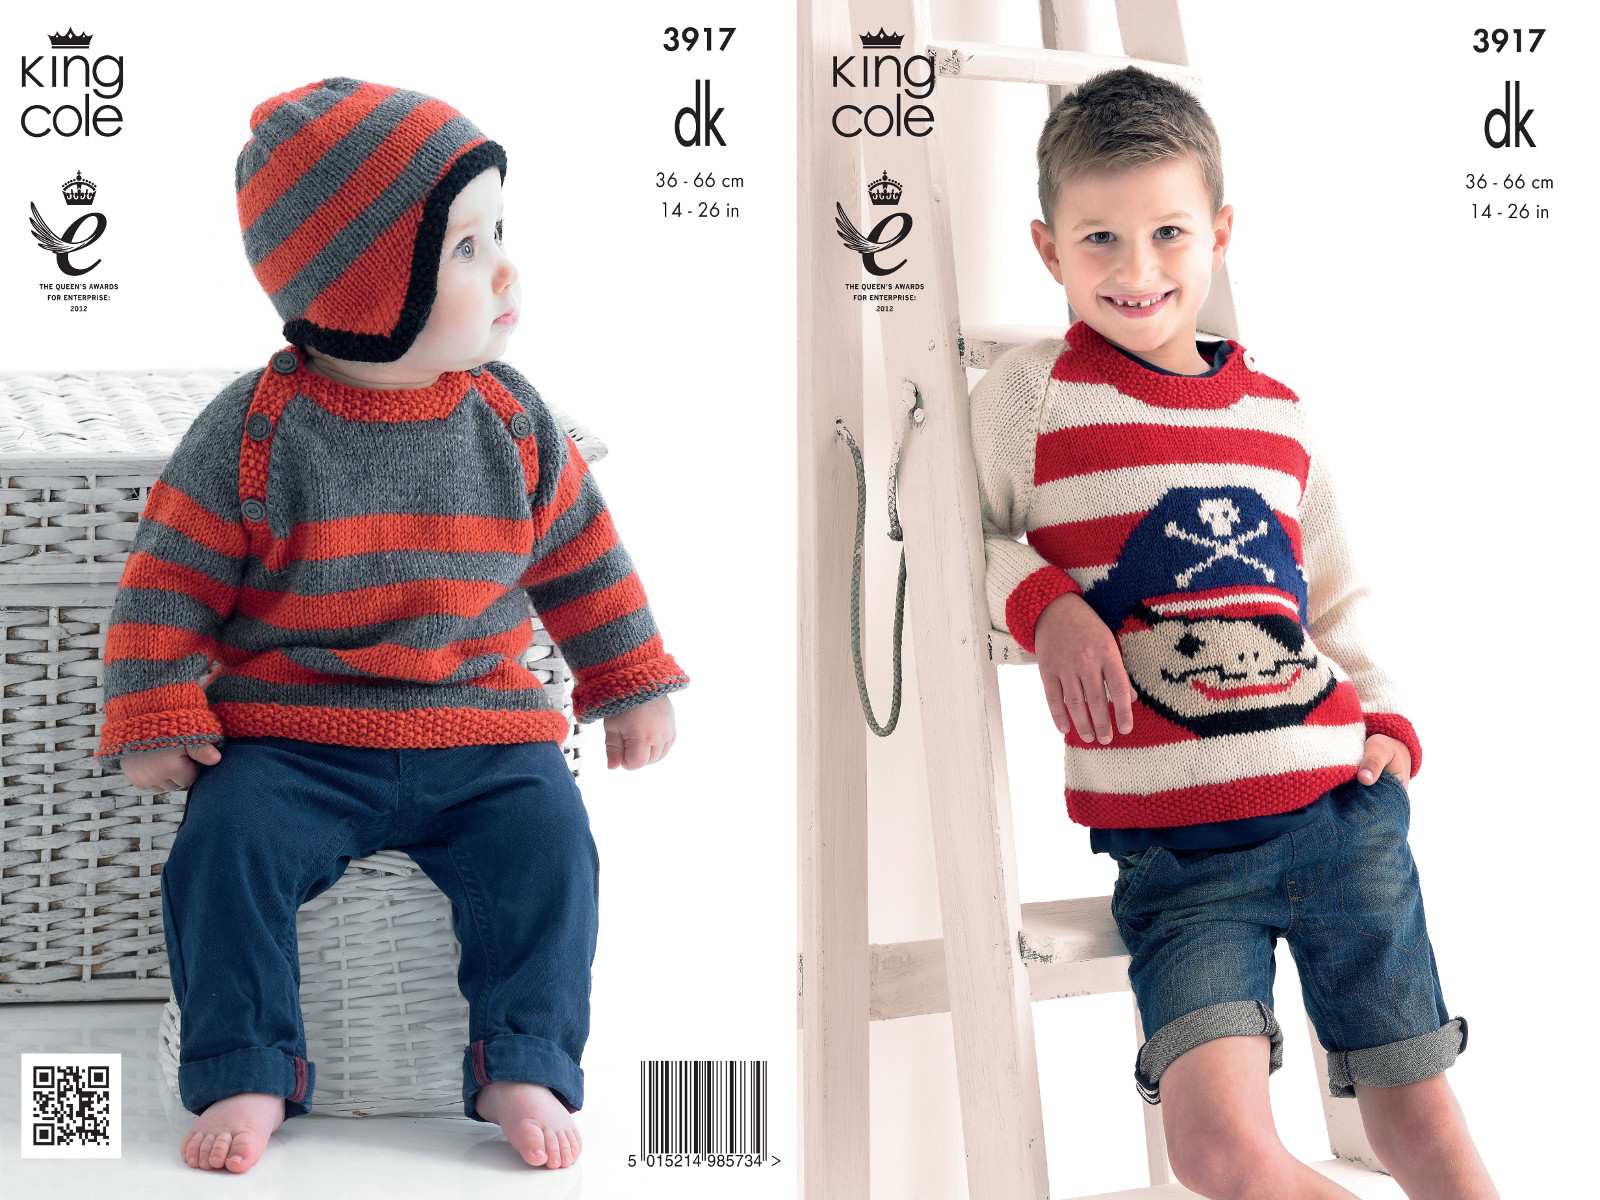 King Cole Boys Double Knitting DK Pattern Striped Pirate Sweater ...